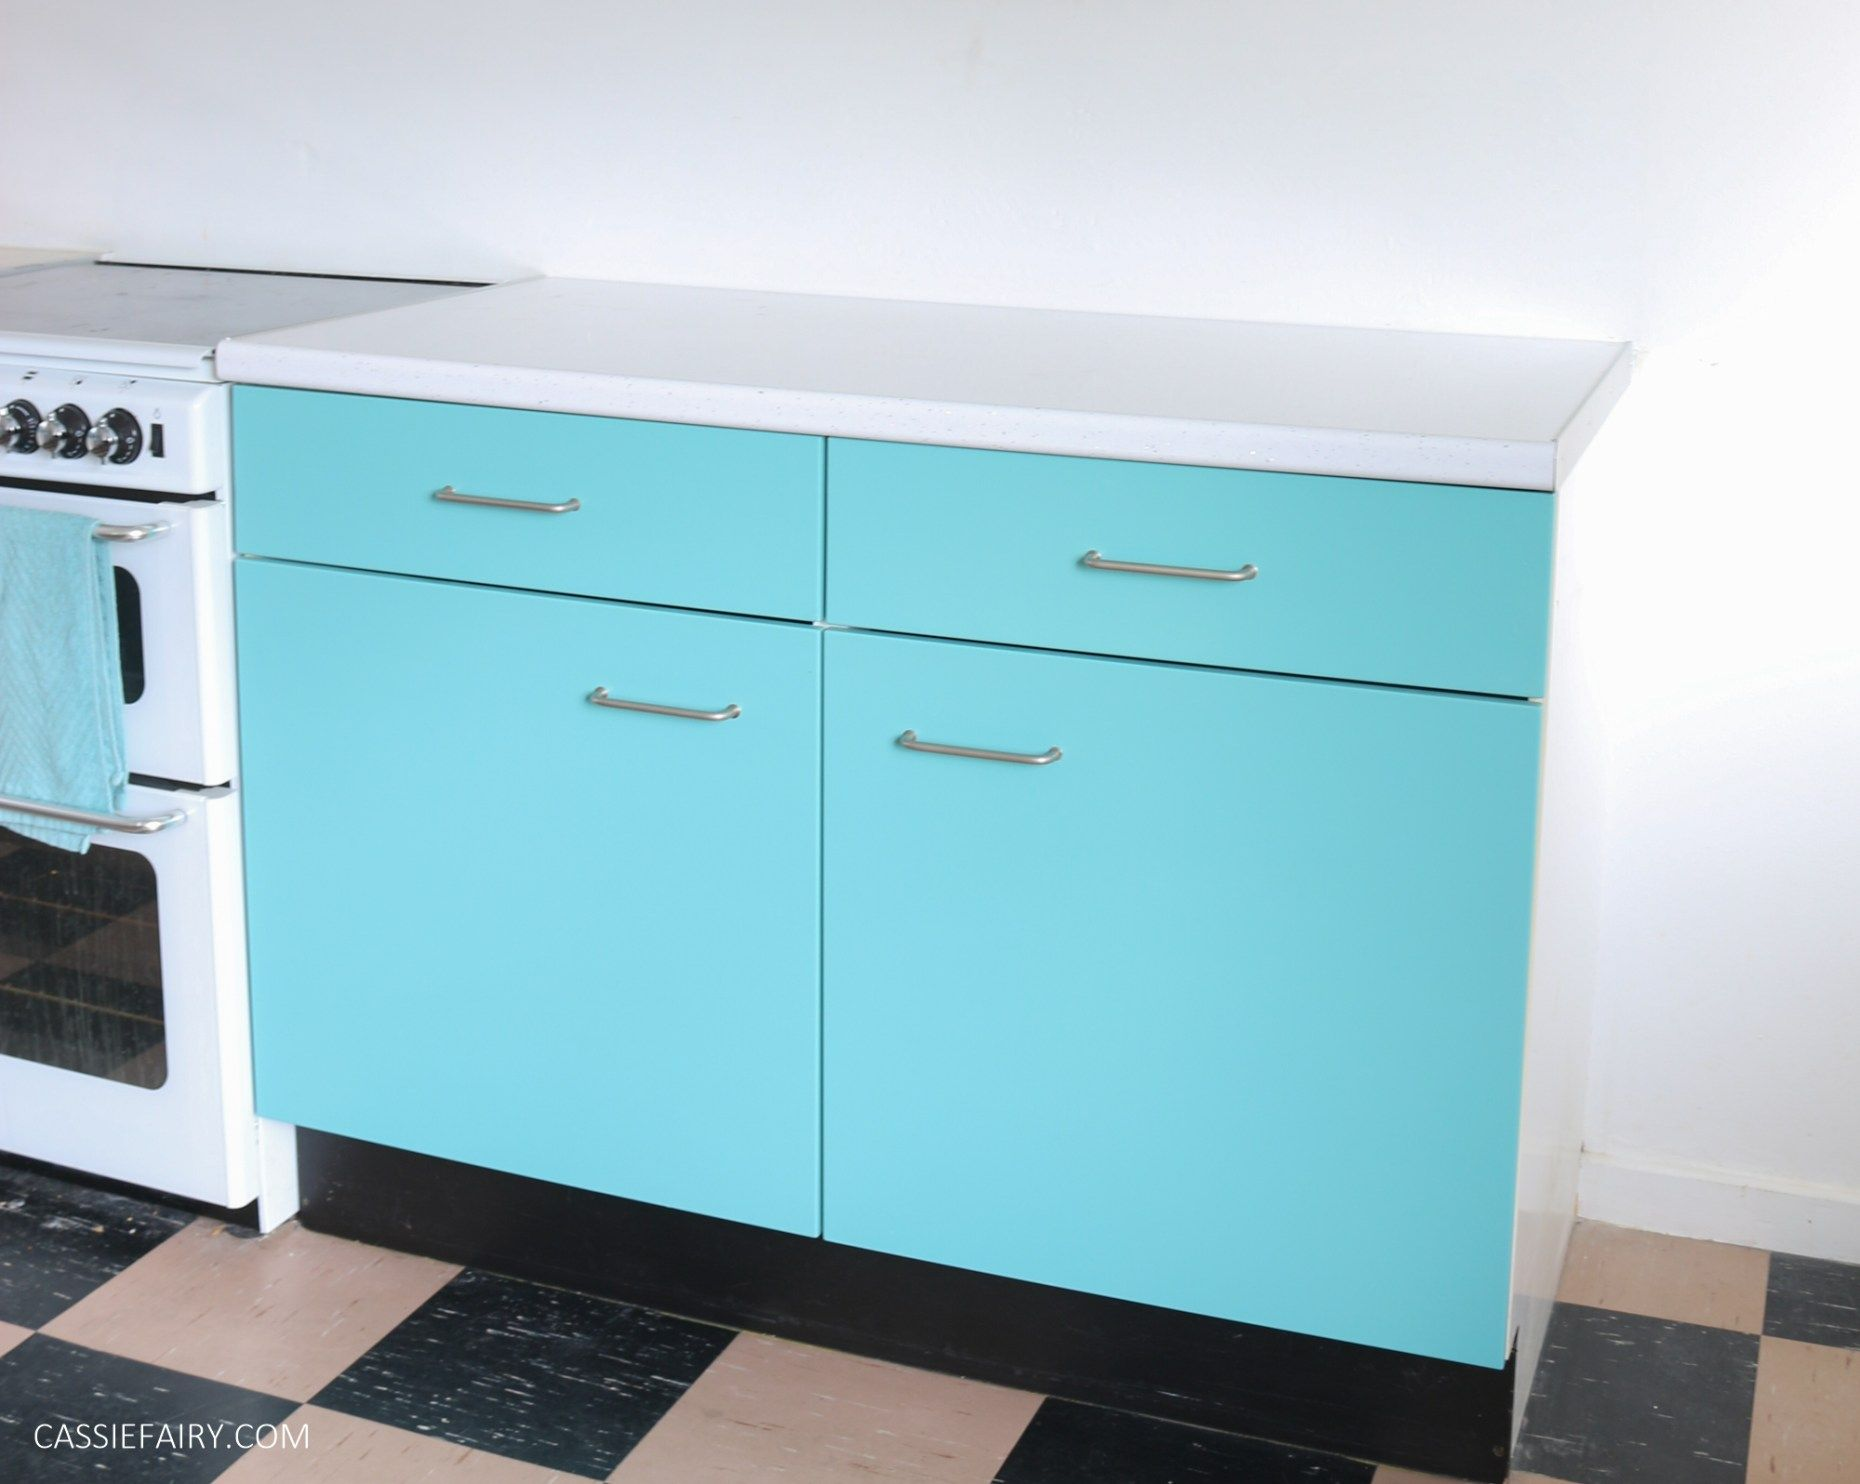 Spray paint for kitchen cupboards  My Thrifty s Kitchen Renovation A lowcost worktop u upcycled